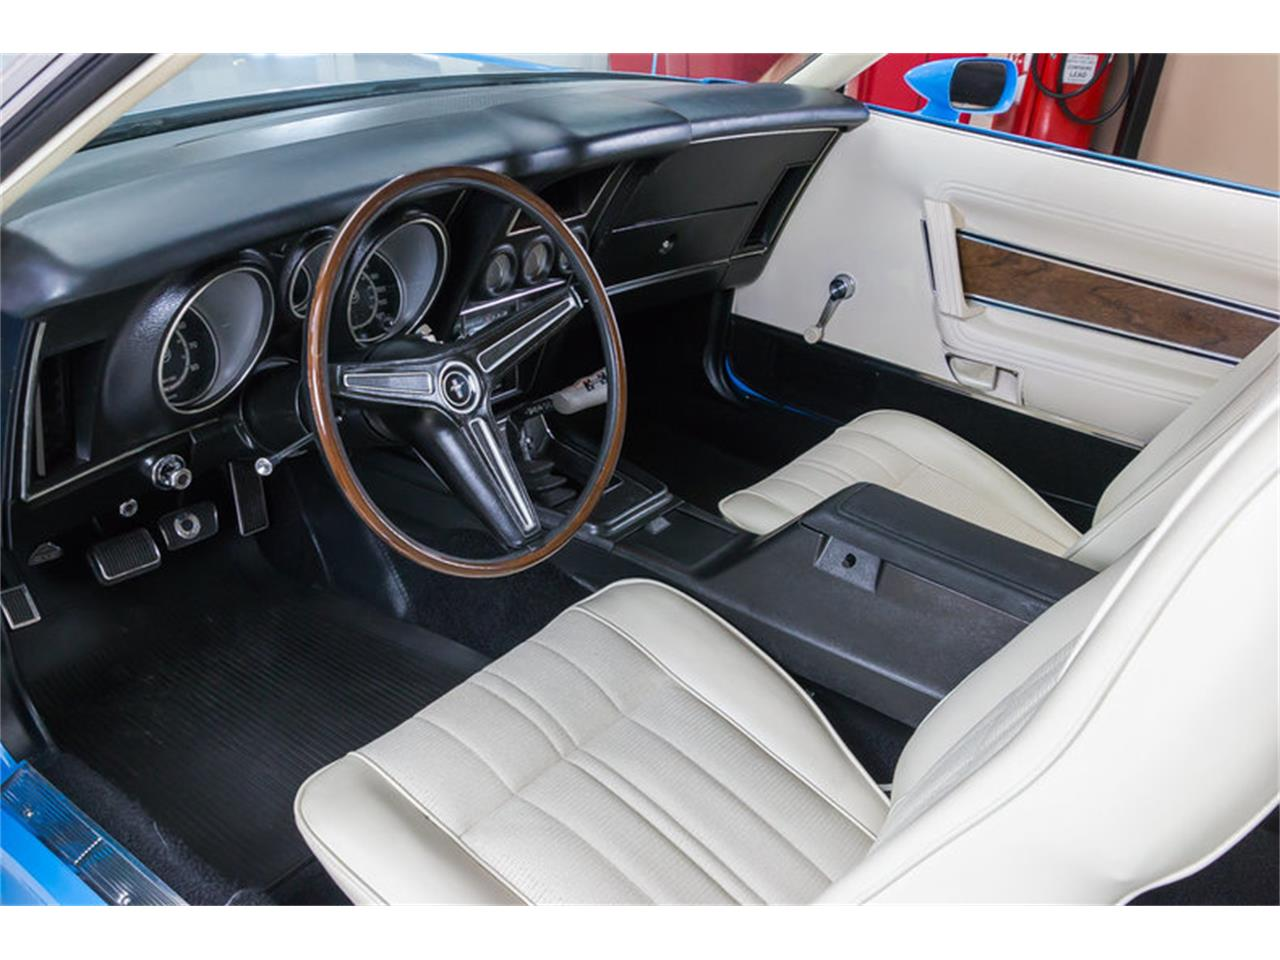 Large Picture of Classic 1971 Ford Mustang located in Michigan Offered by Vanguard Motor Sales - IW4B